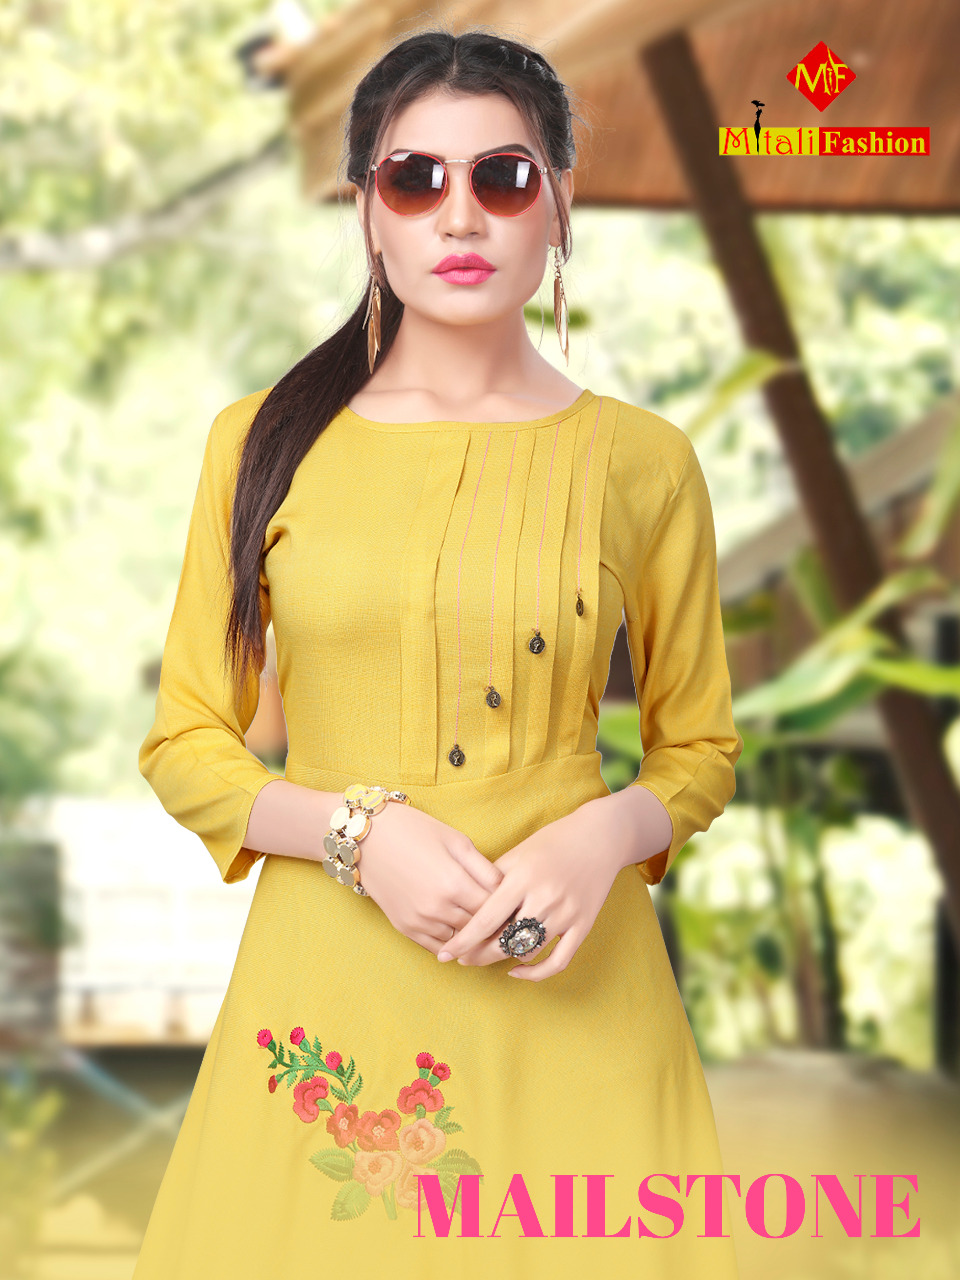 Mitali fashion presents mailstone casual fancy gown style kurtis collection